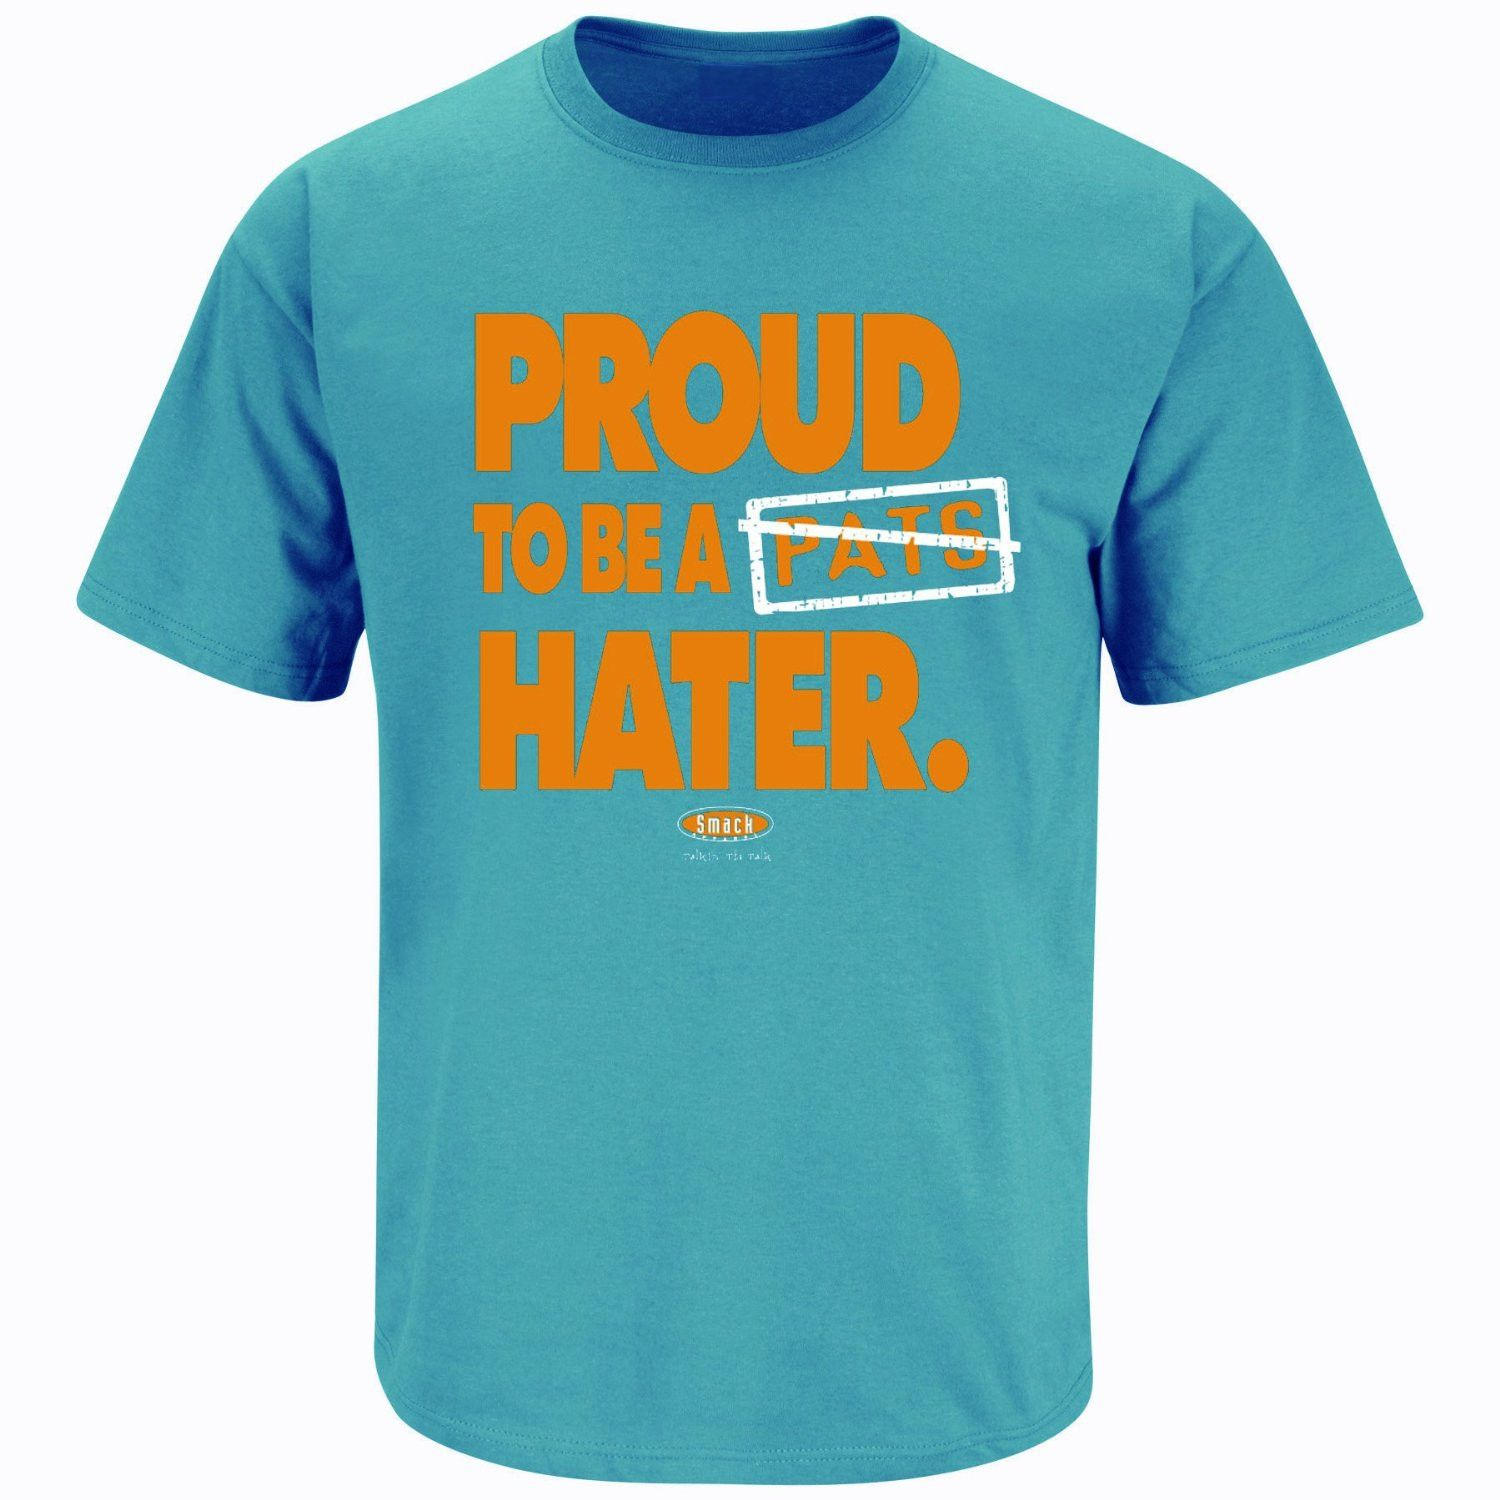 Miami Dolphins Fans. Proud To Be a Patriots Hater. T-Shirt - 1